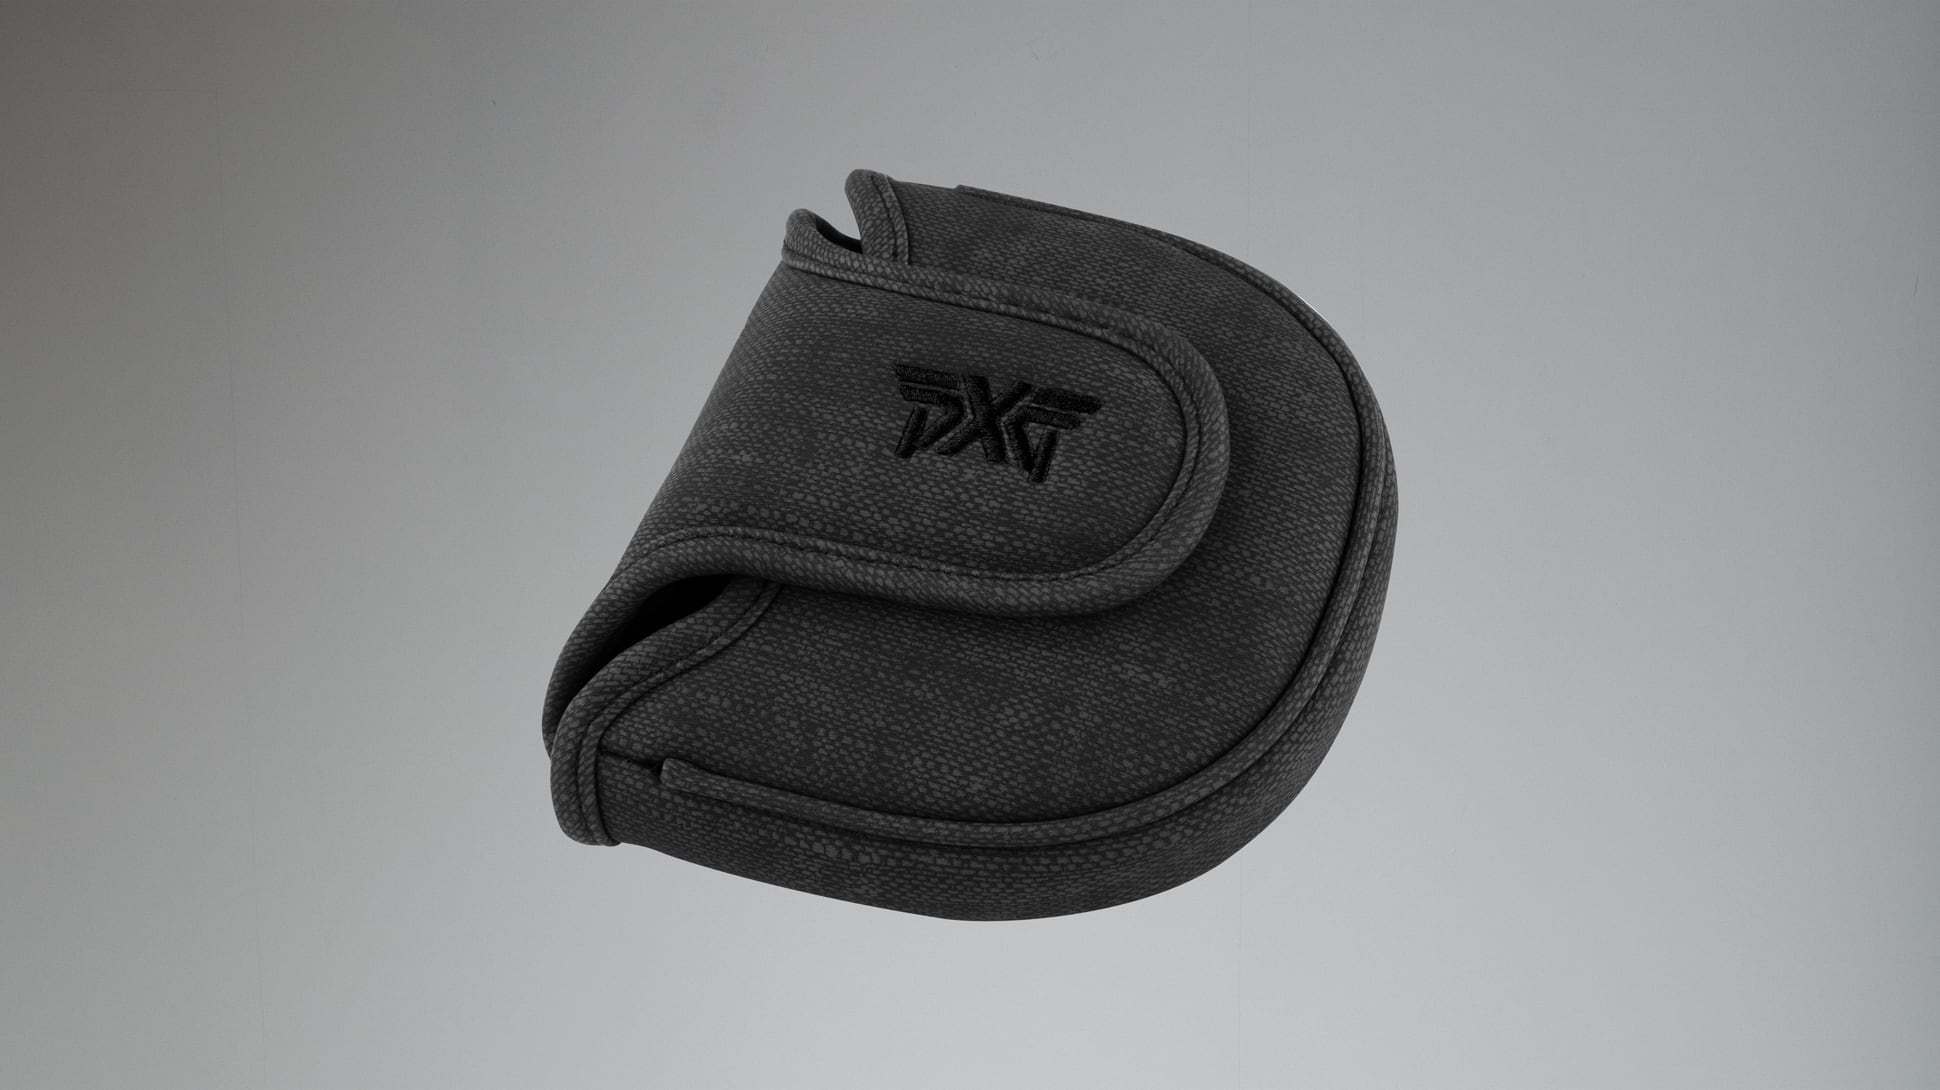 Deluxe Performance Mallet Putter Headcover Image 2